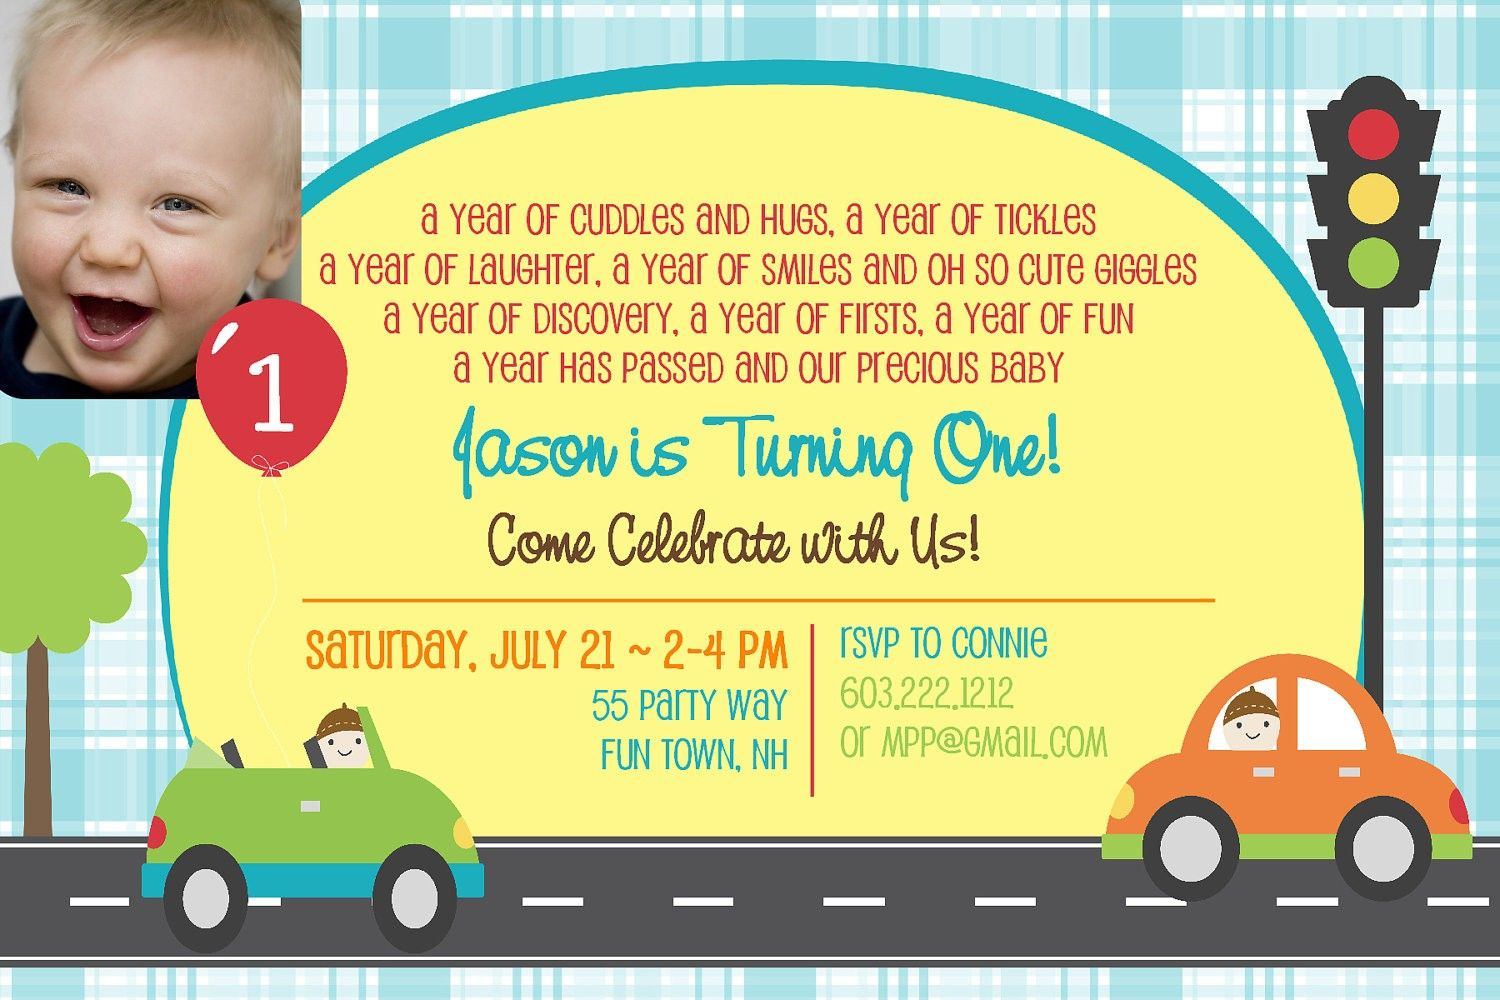 Cars 1st birthday invitation first birthday cars invitation cars 1st birthday invitation first birthday cars invitation printable birthday invitation boy cars birthday party invitations photo any age pinterest filmwisefo Gallery